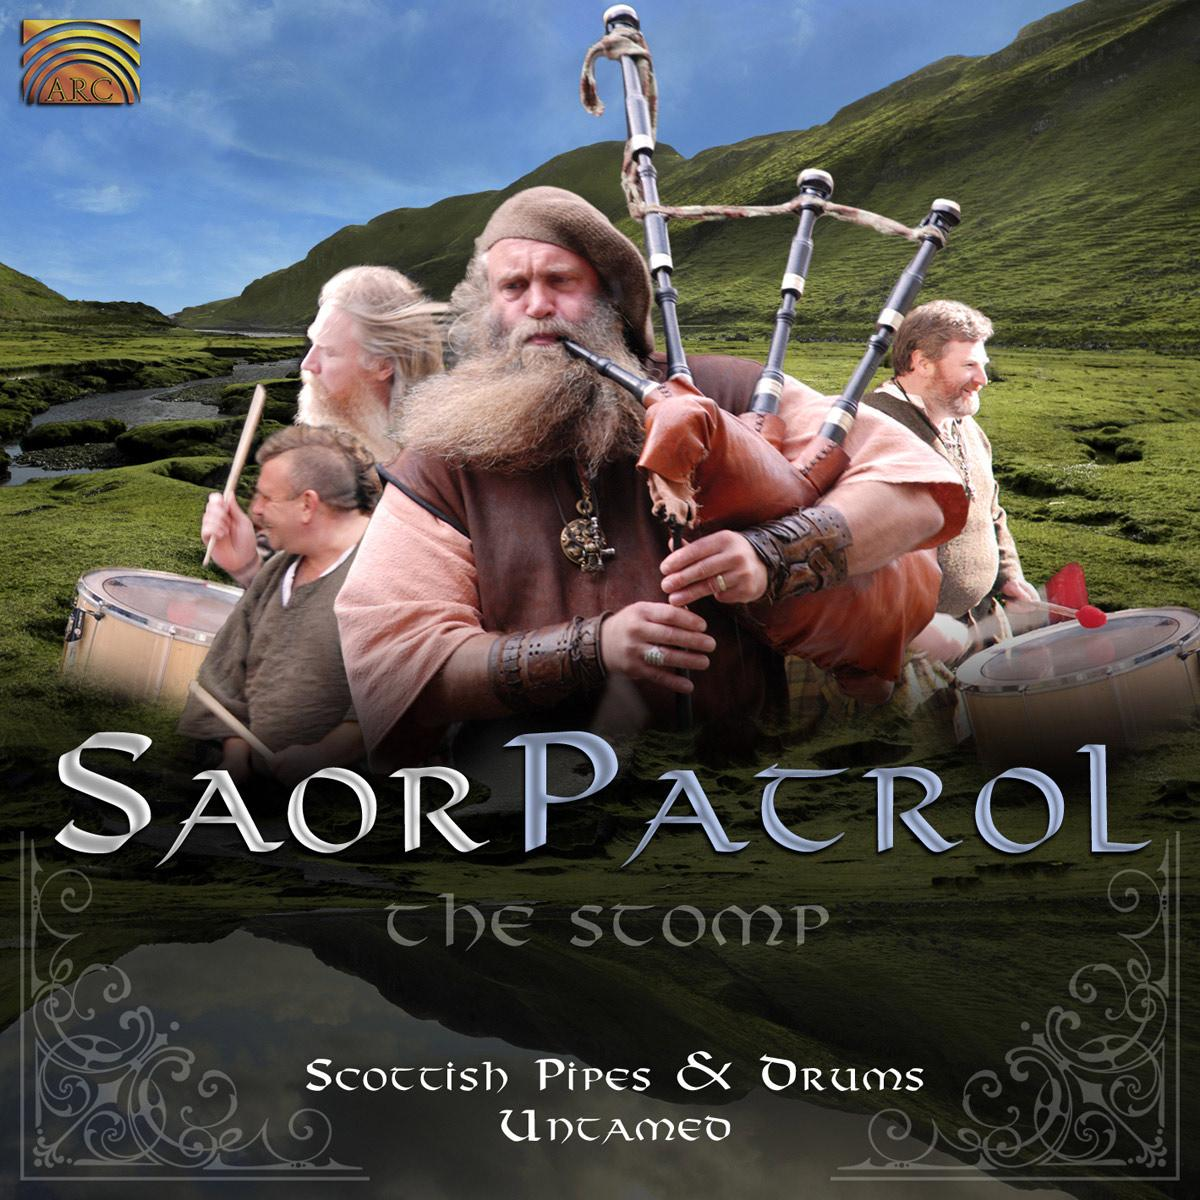 Saor Patrol - Stomp - Scottish Pipes & Drums Untamed,